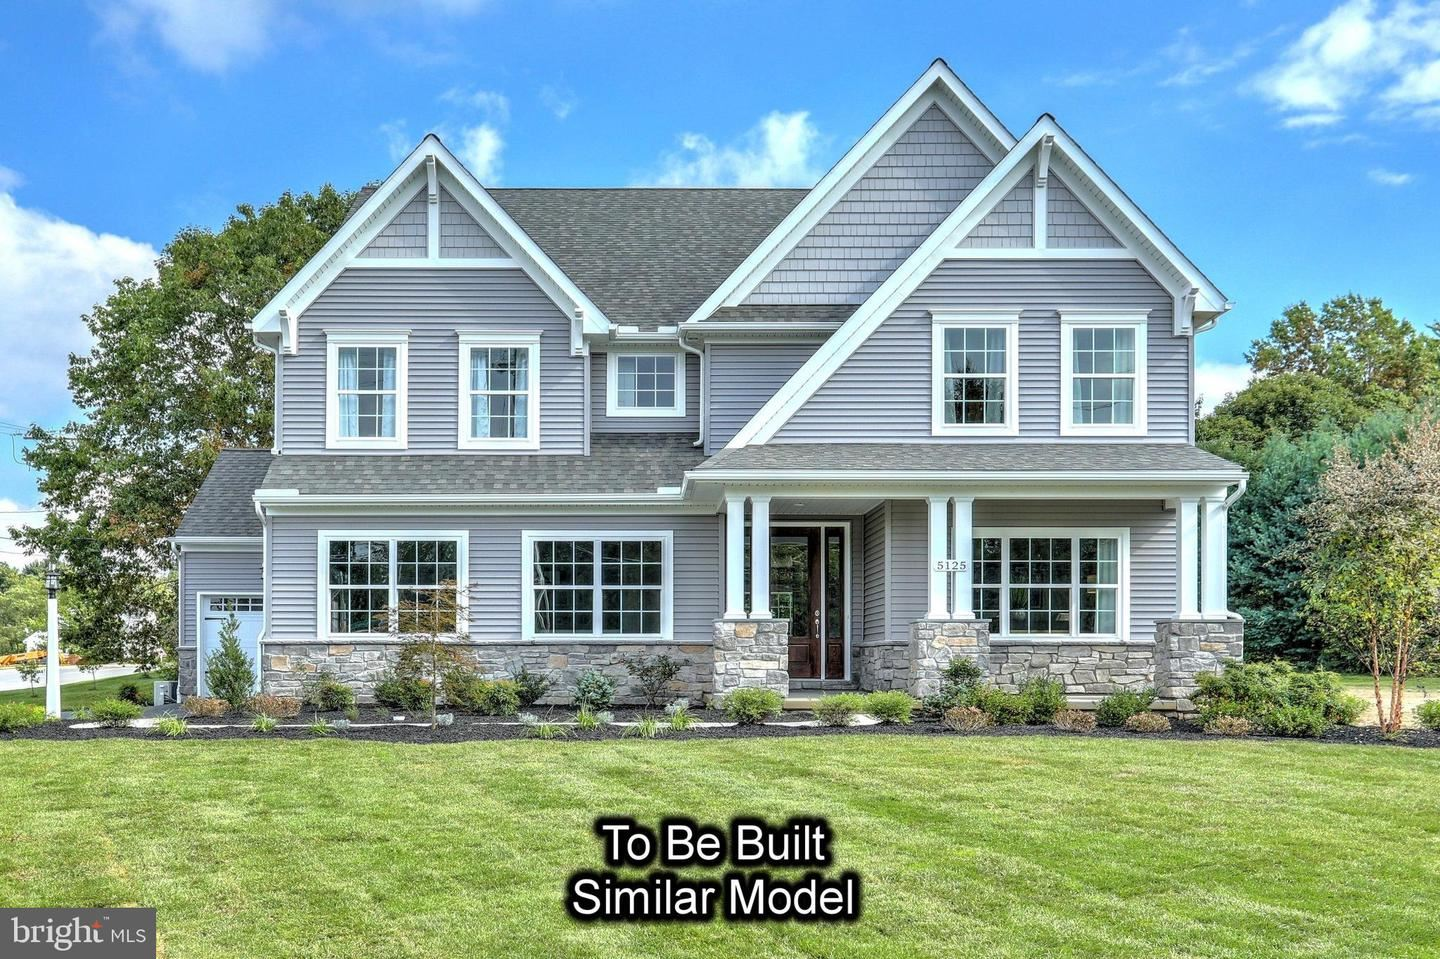 0 GREAT DAY CT, Westminster, MD 21157 - MLS#: MDCR200592